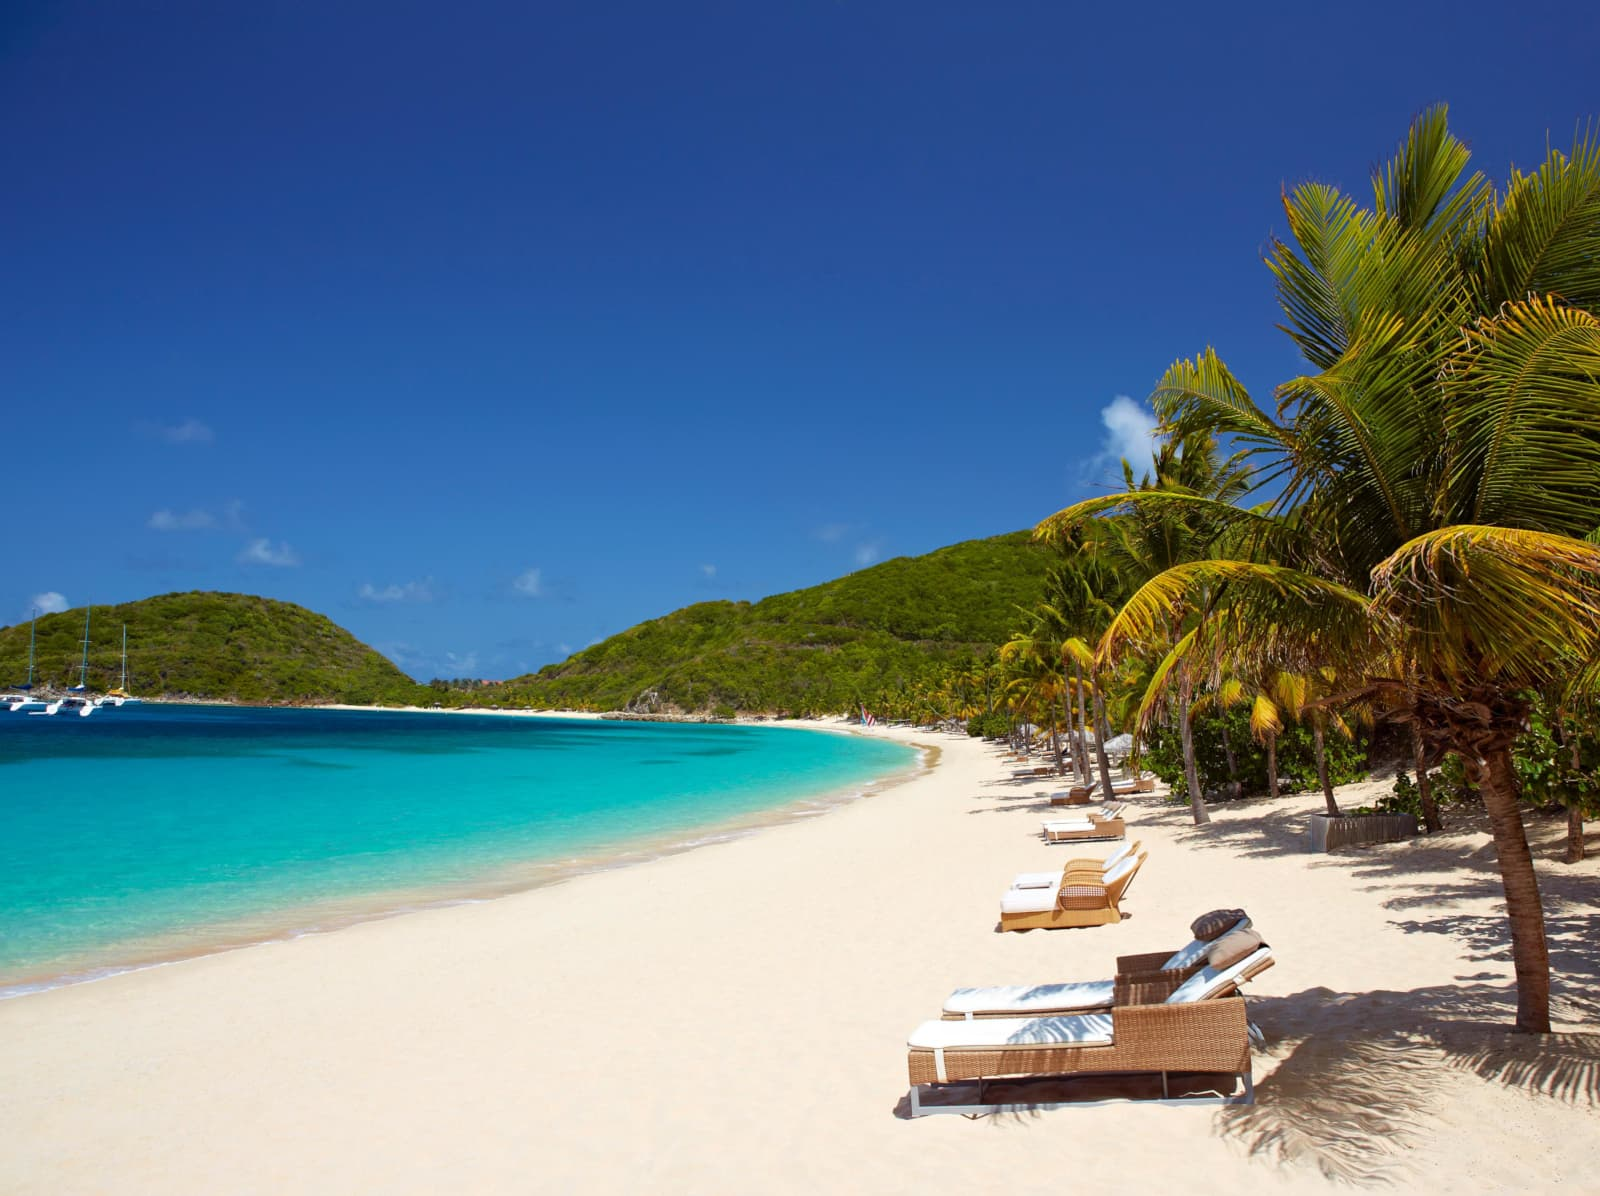 The Peter Island Resort and Spa - one of the best tennis resorts for your tennis holidays in British Virgin Islands